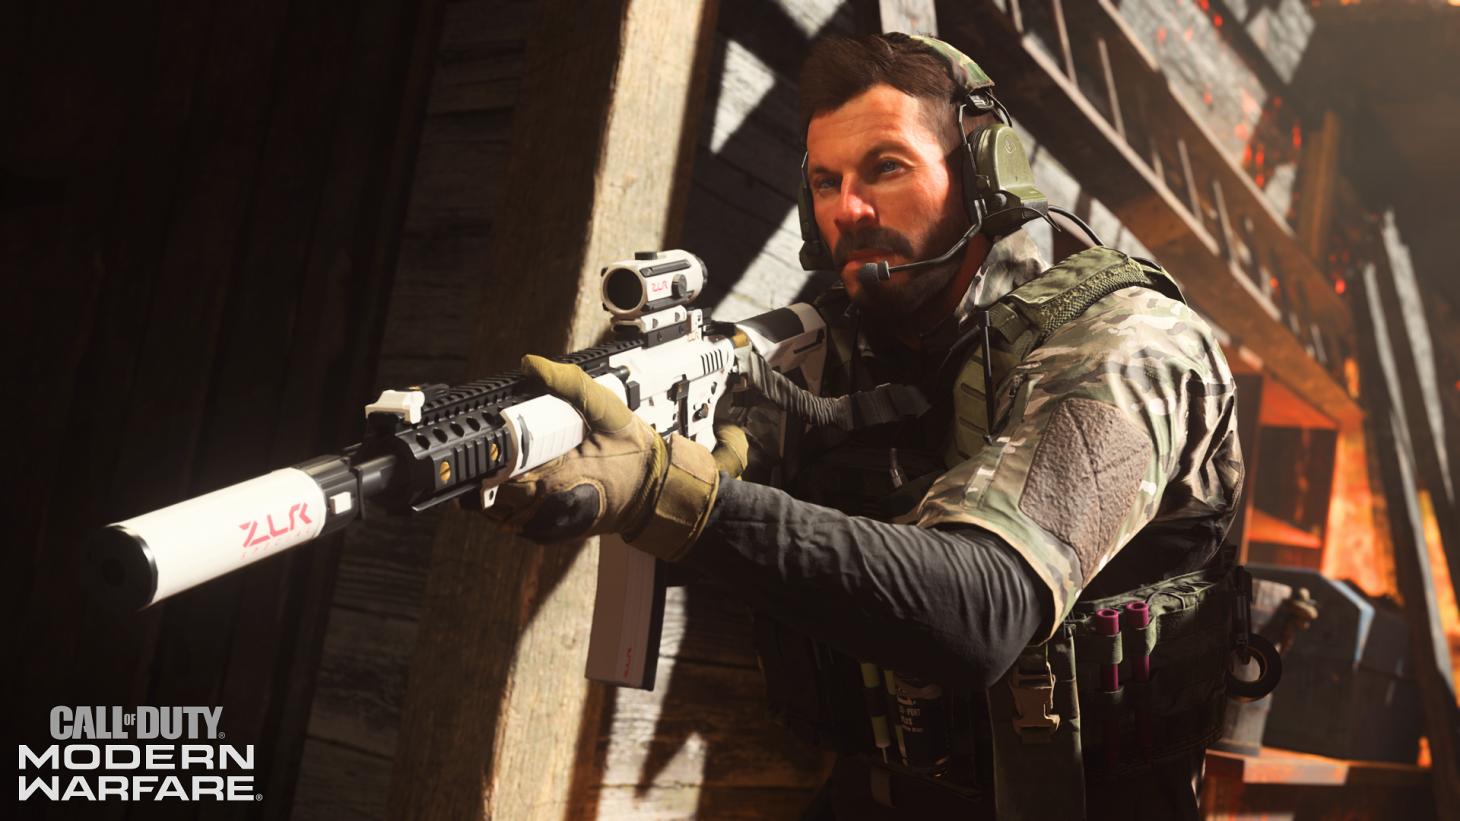 Call Of Duty Modern Warfare Season 3 Is Live Now Game Informer